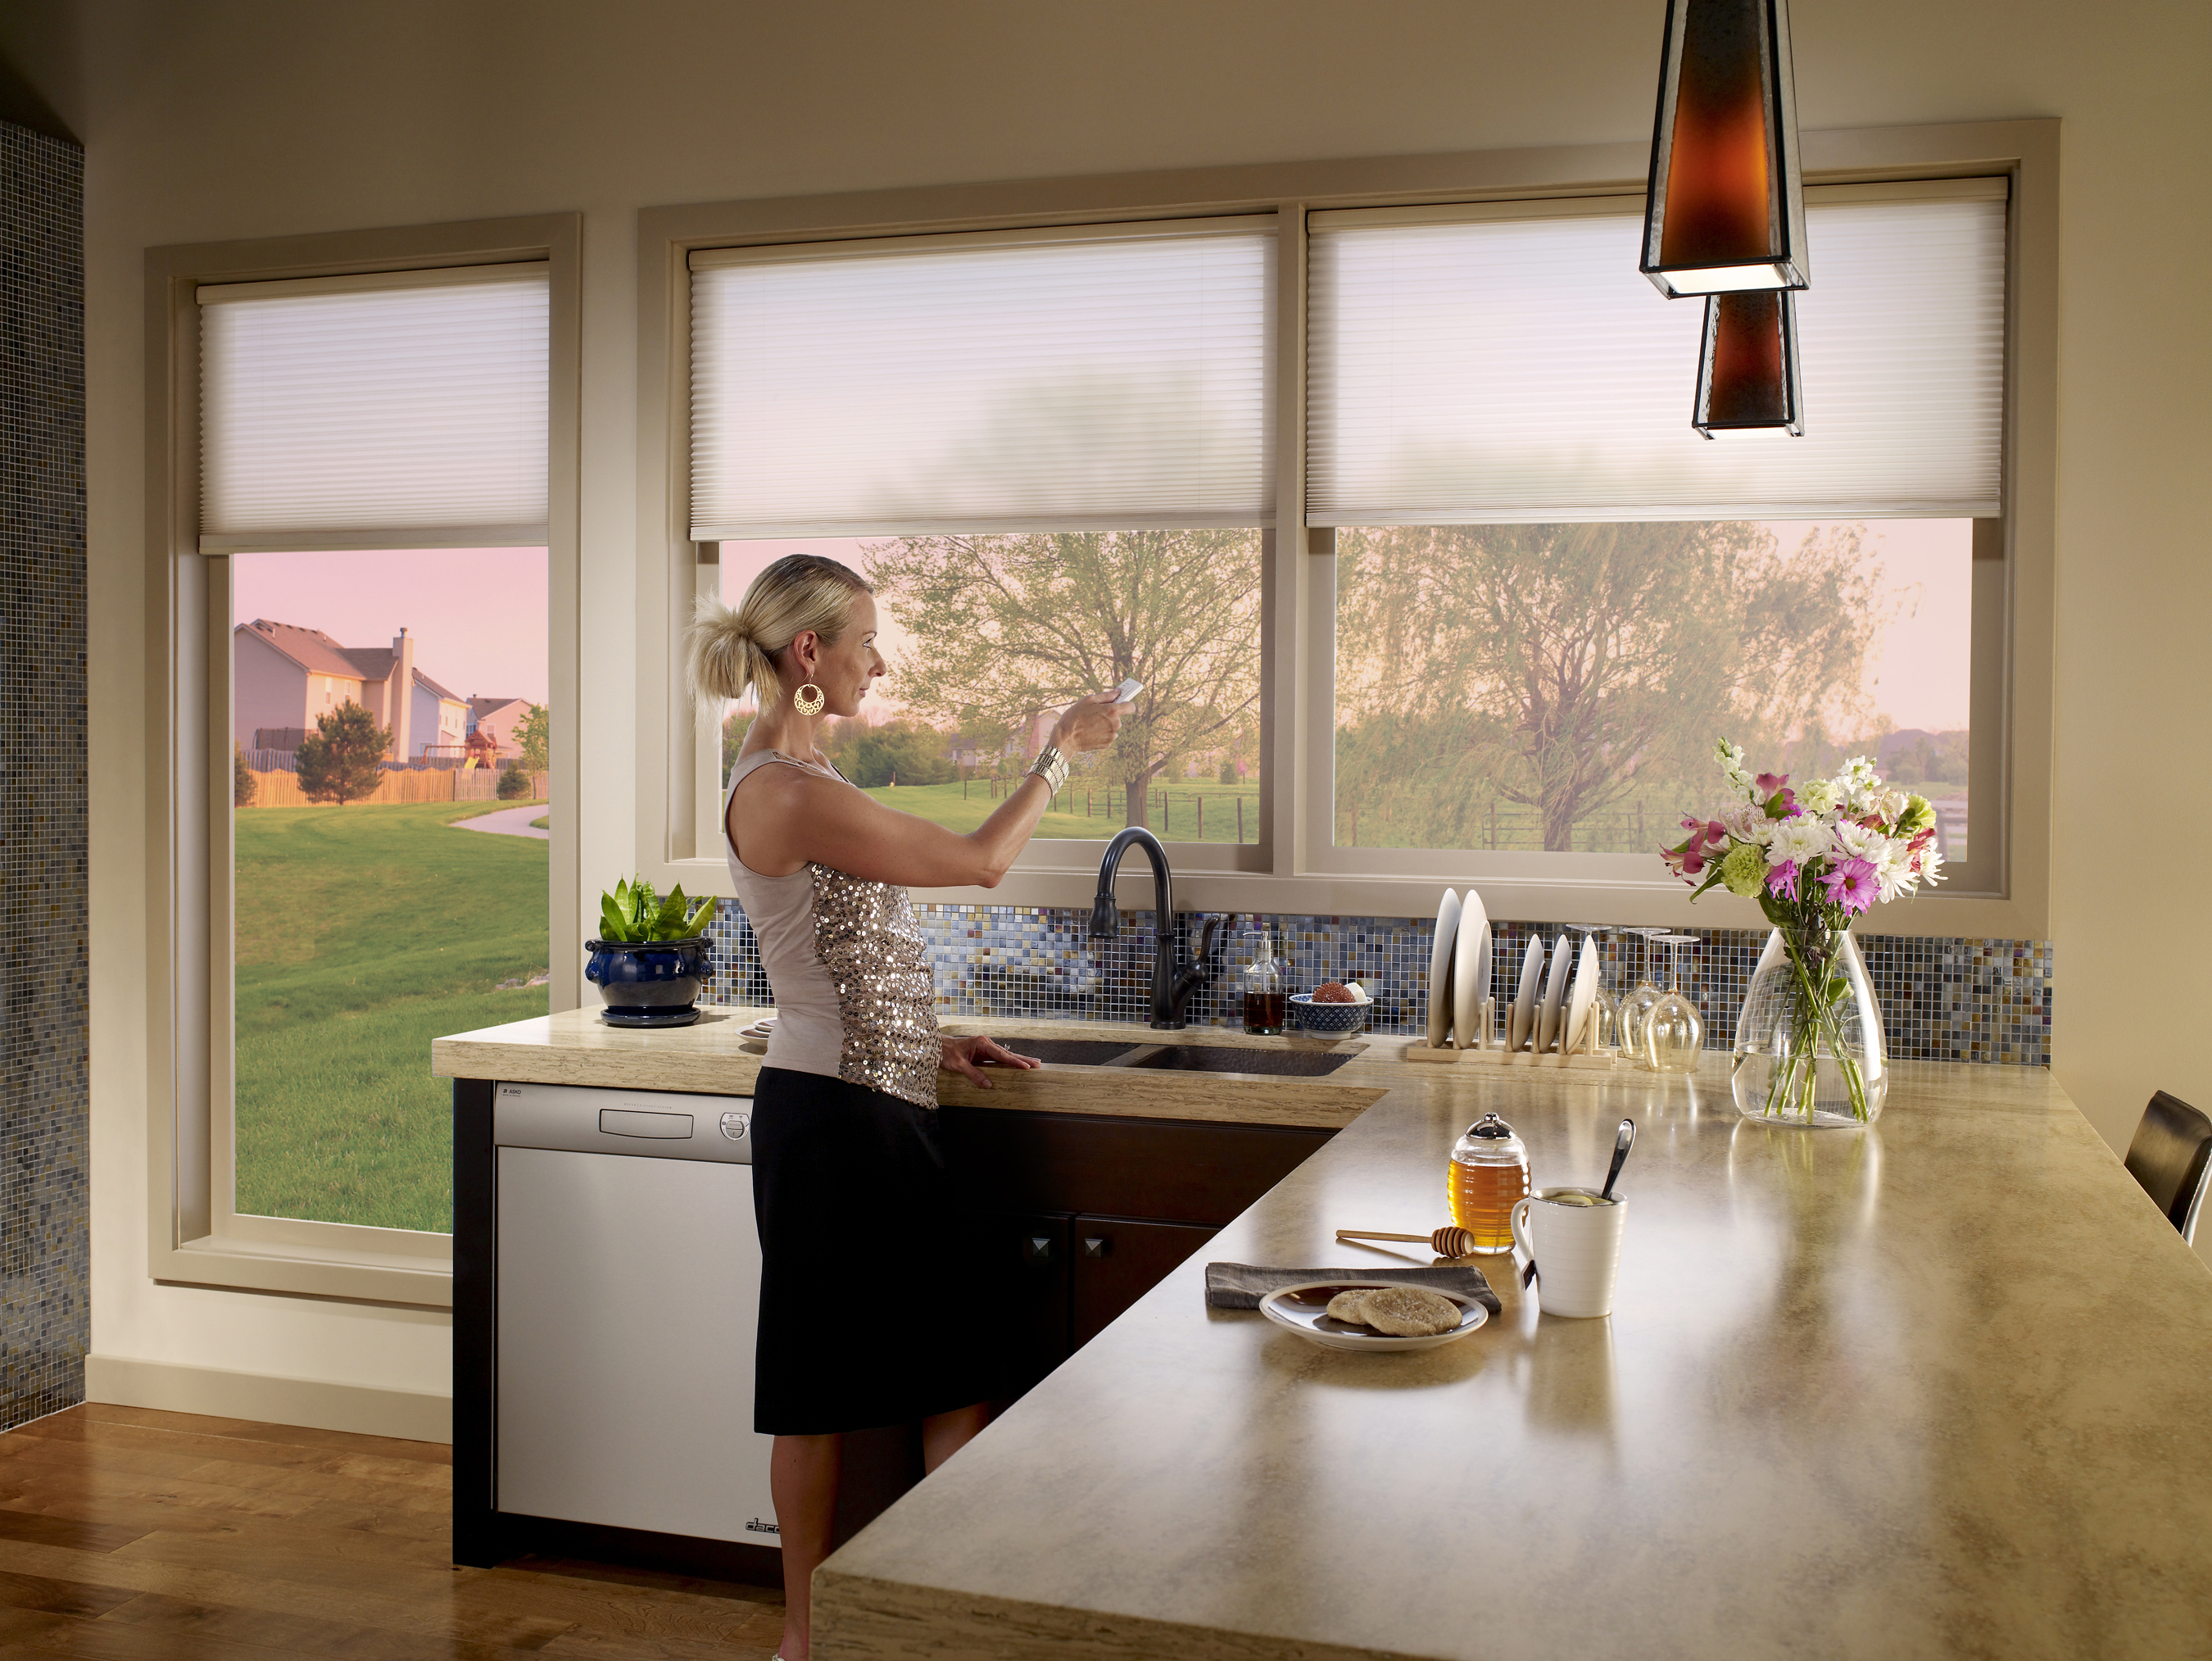 motorized window shades motorized window treatments houston - lutron motorized shades | the shade CRXXNET